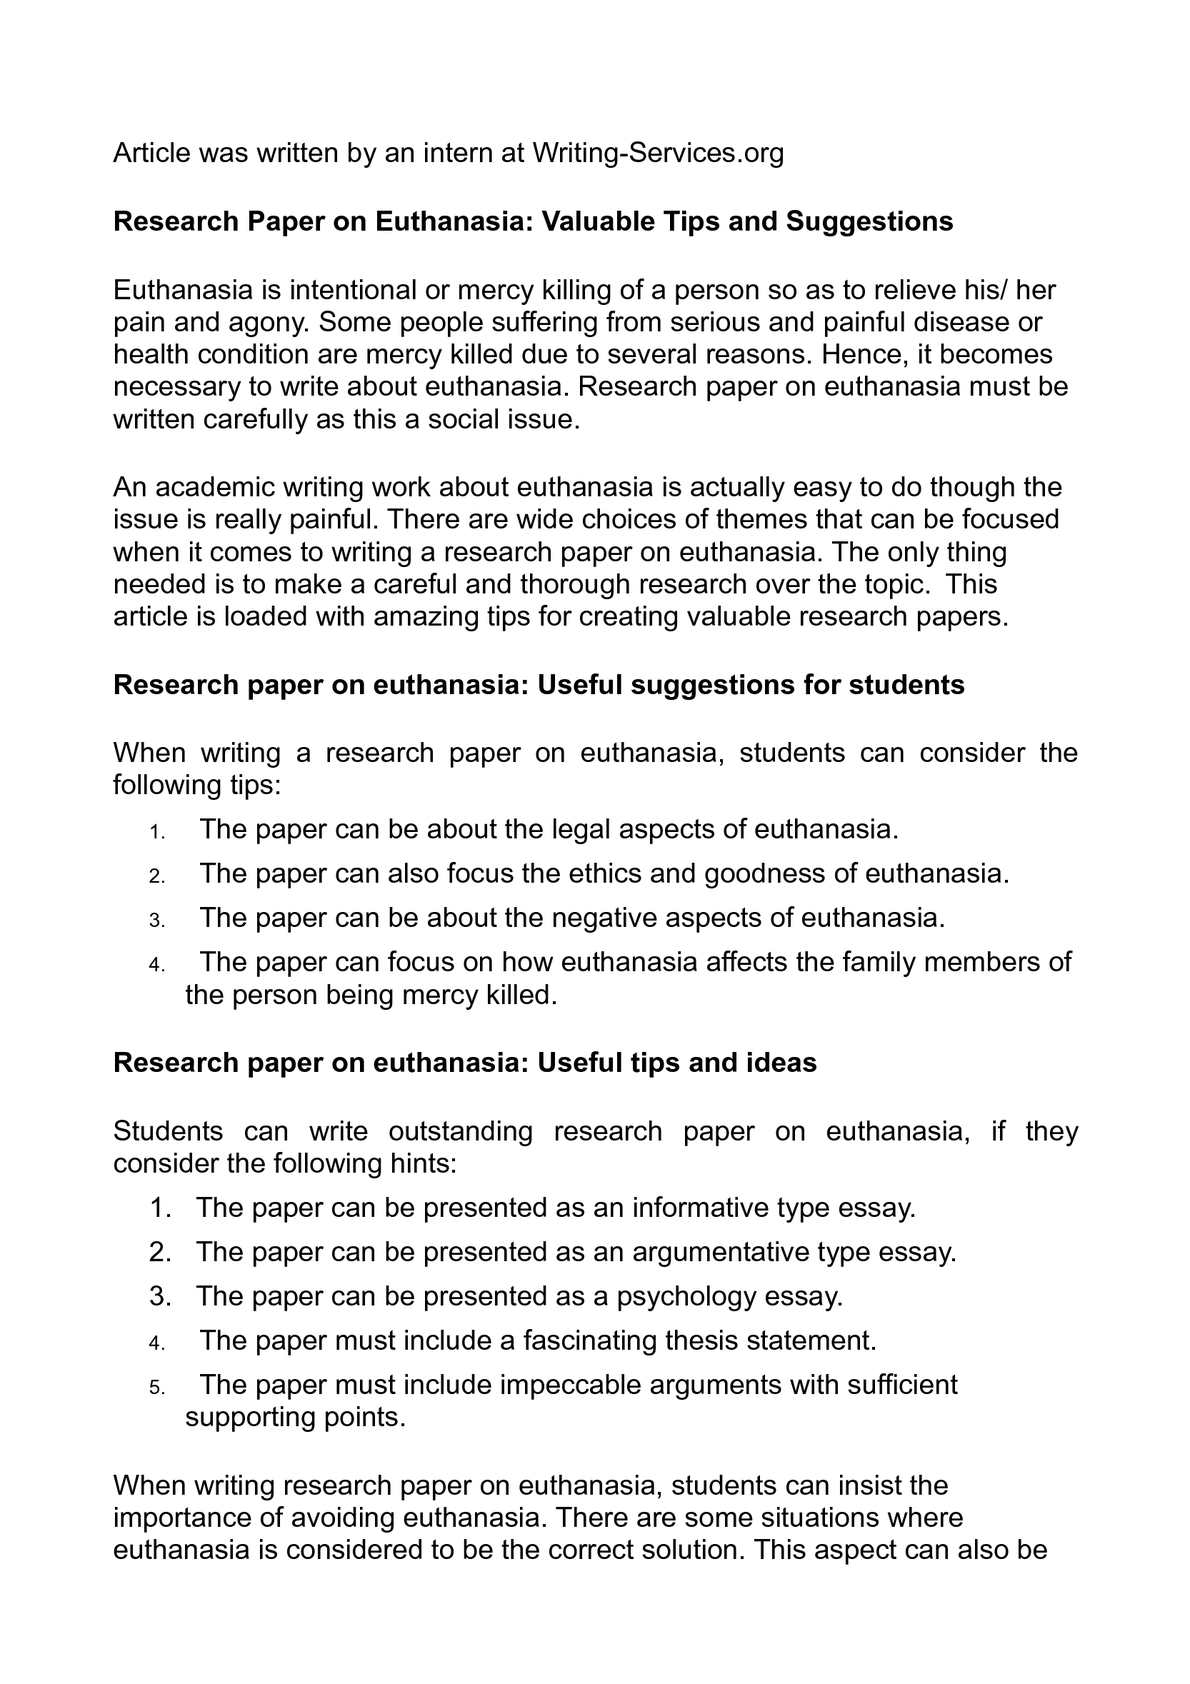 argumentative essay on capital punishment argumentative essay for  argumentative essay for arranged marriage marriage vs living together thesis statement marriage vs living together thesis